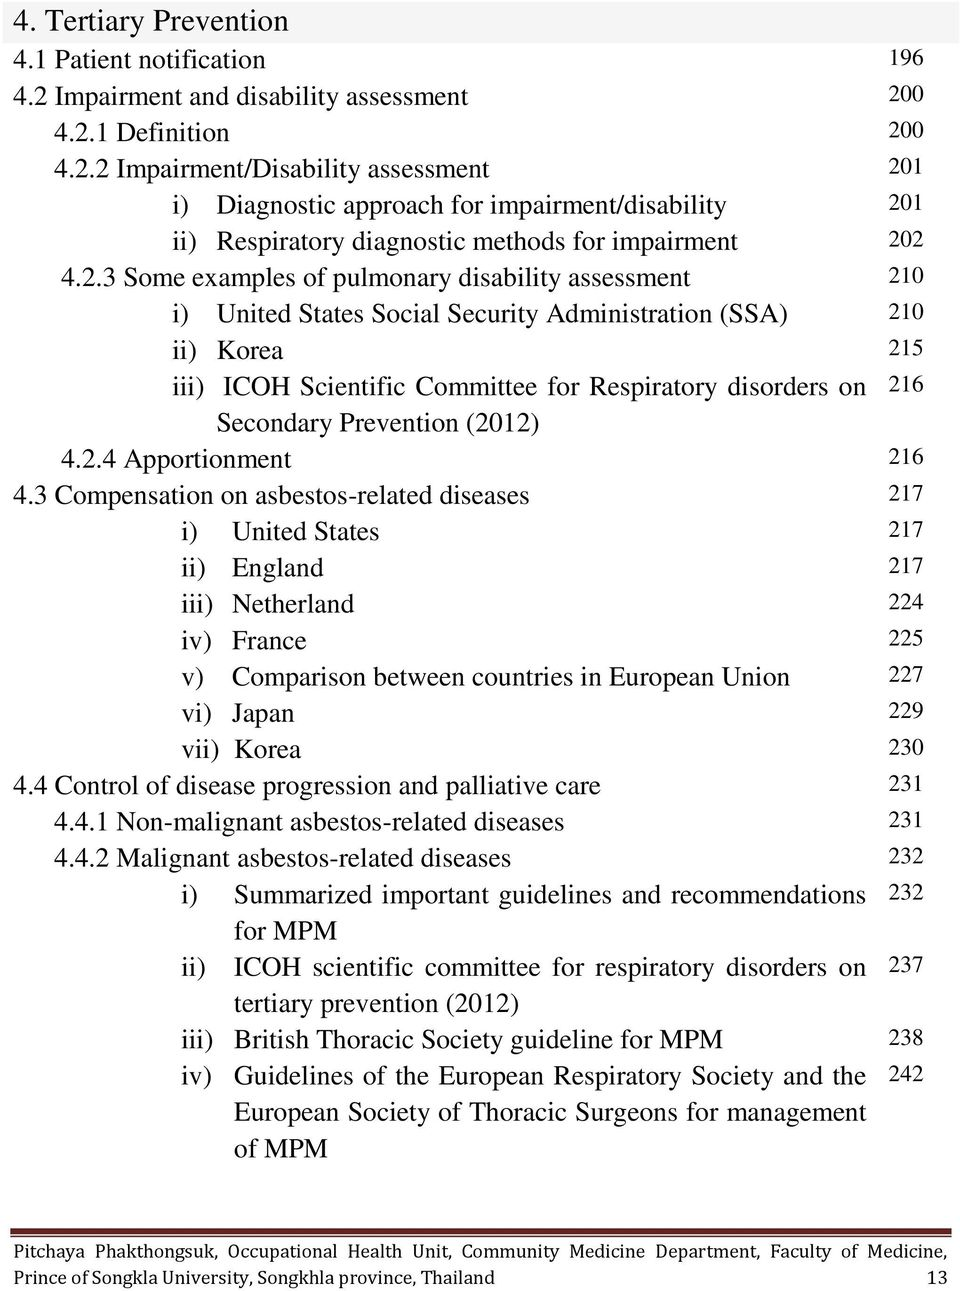 2.3 Some examples of pulmonary disability assessment 210 i) United States Social Security Administration (SSA) 210 ii) Korea 215 iii) ICOH Scientific Committee for Respiratory disorders on 216